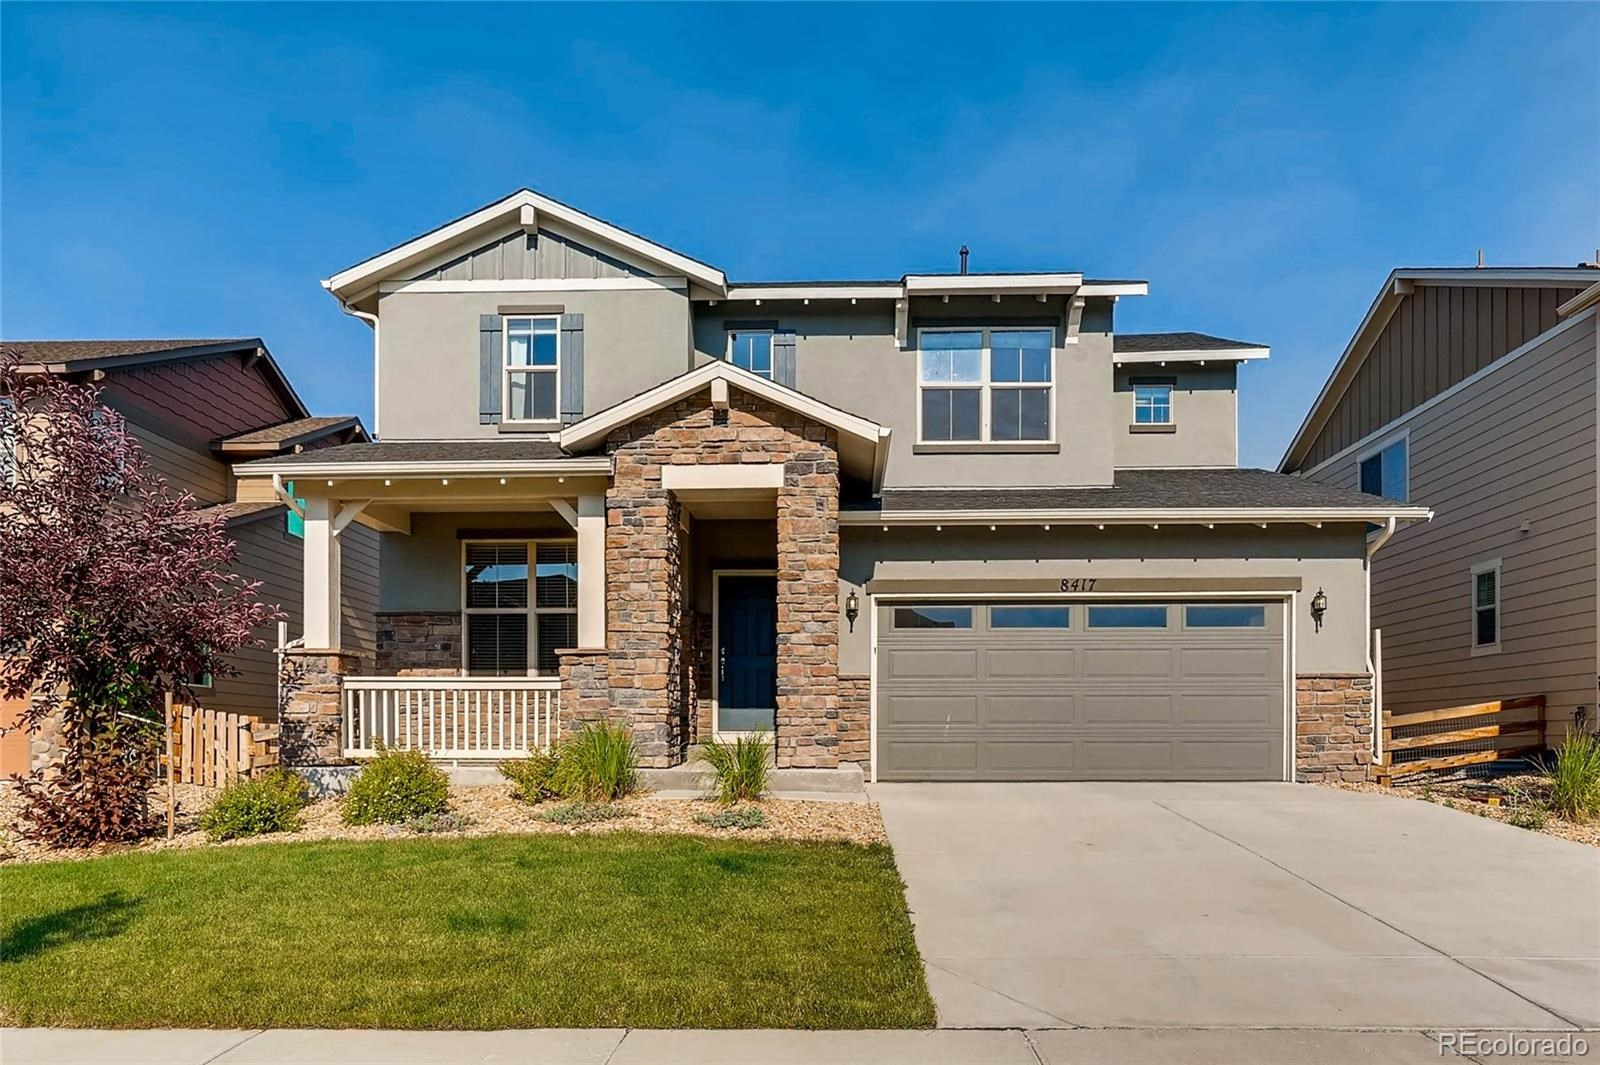 MLS# 9908846 - 1 - 8417 Wilkerson Court, Arvada, CO 80007